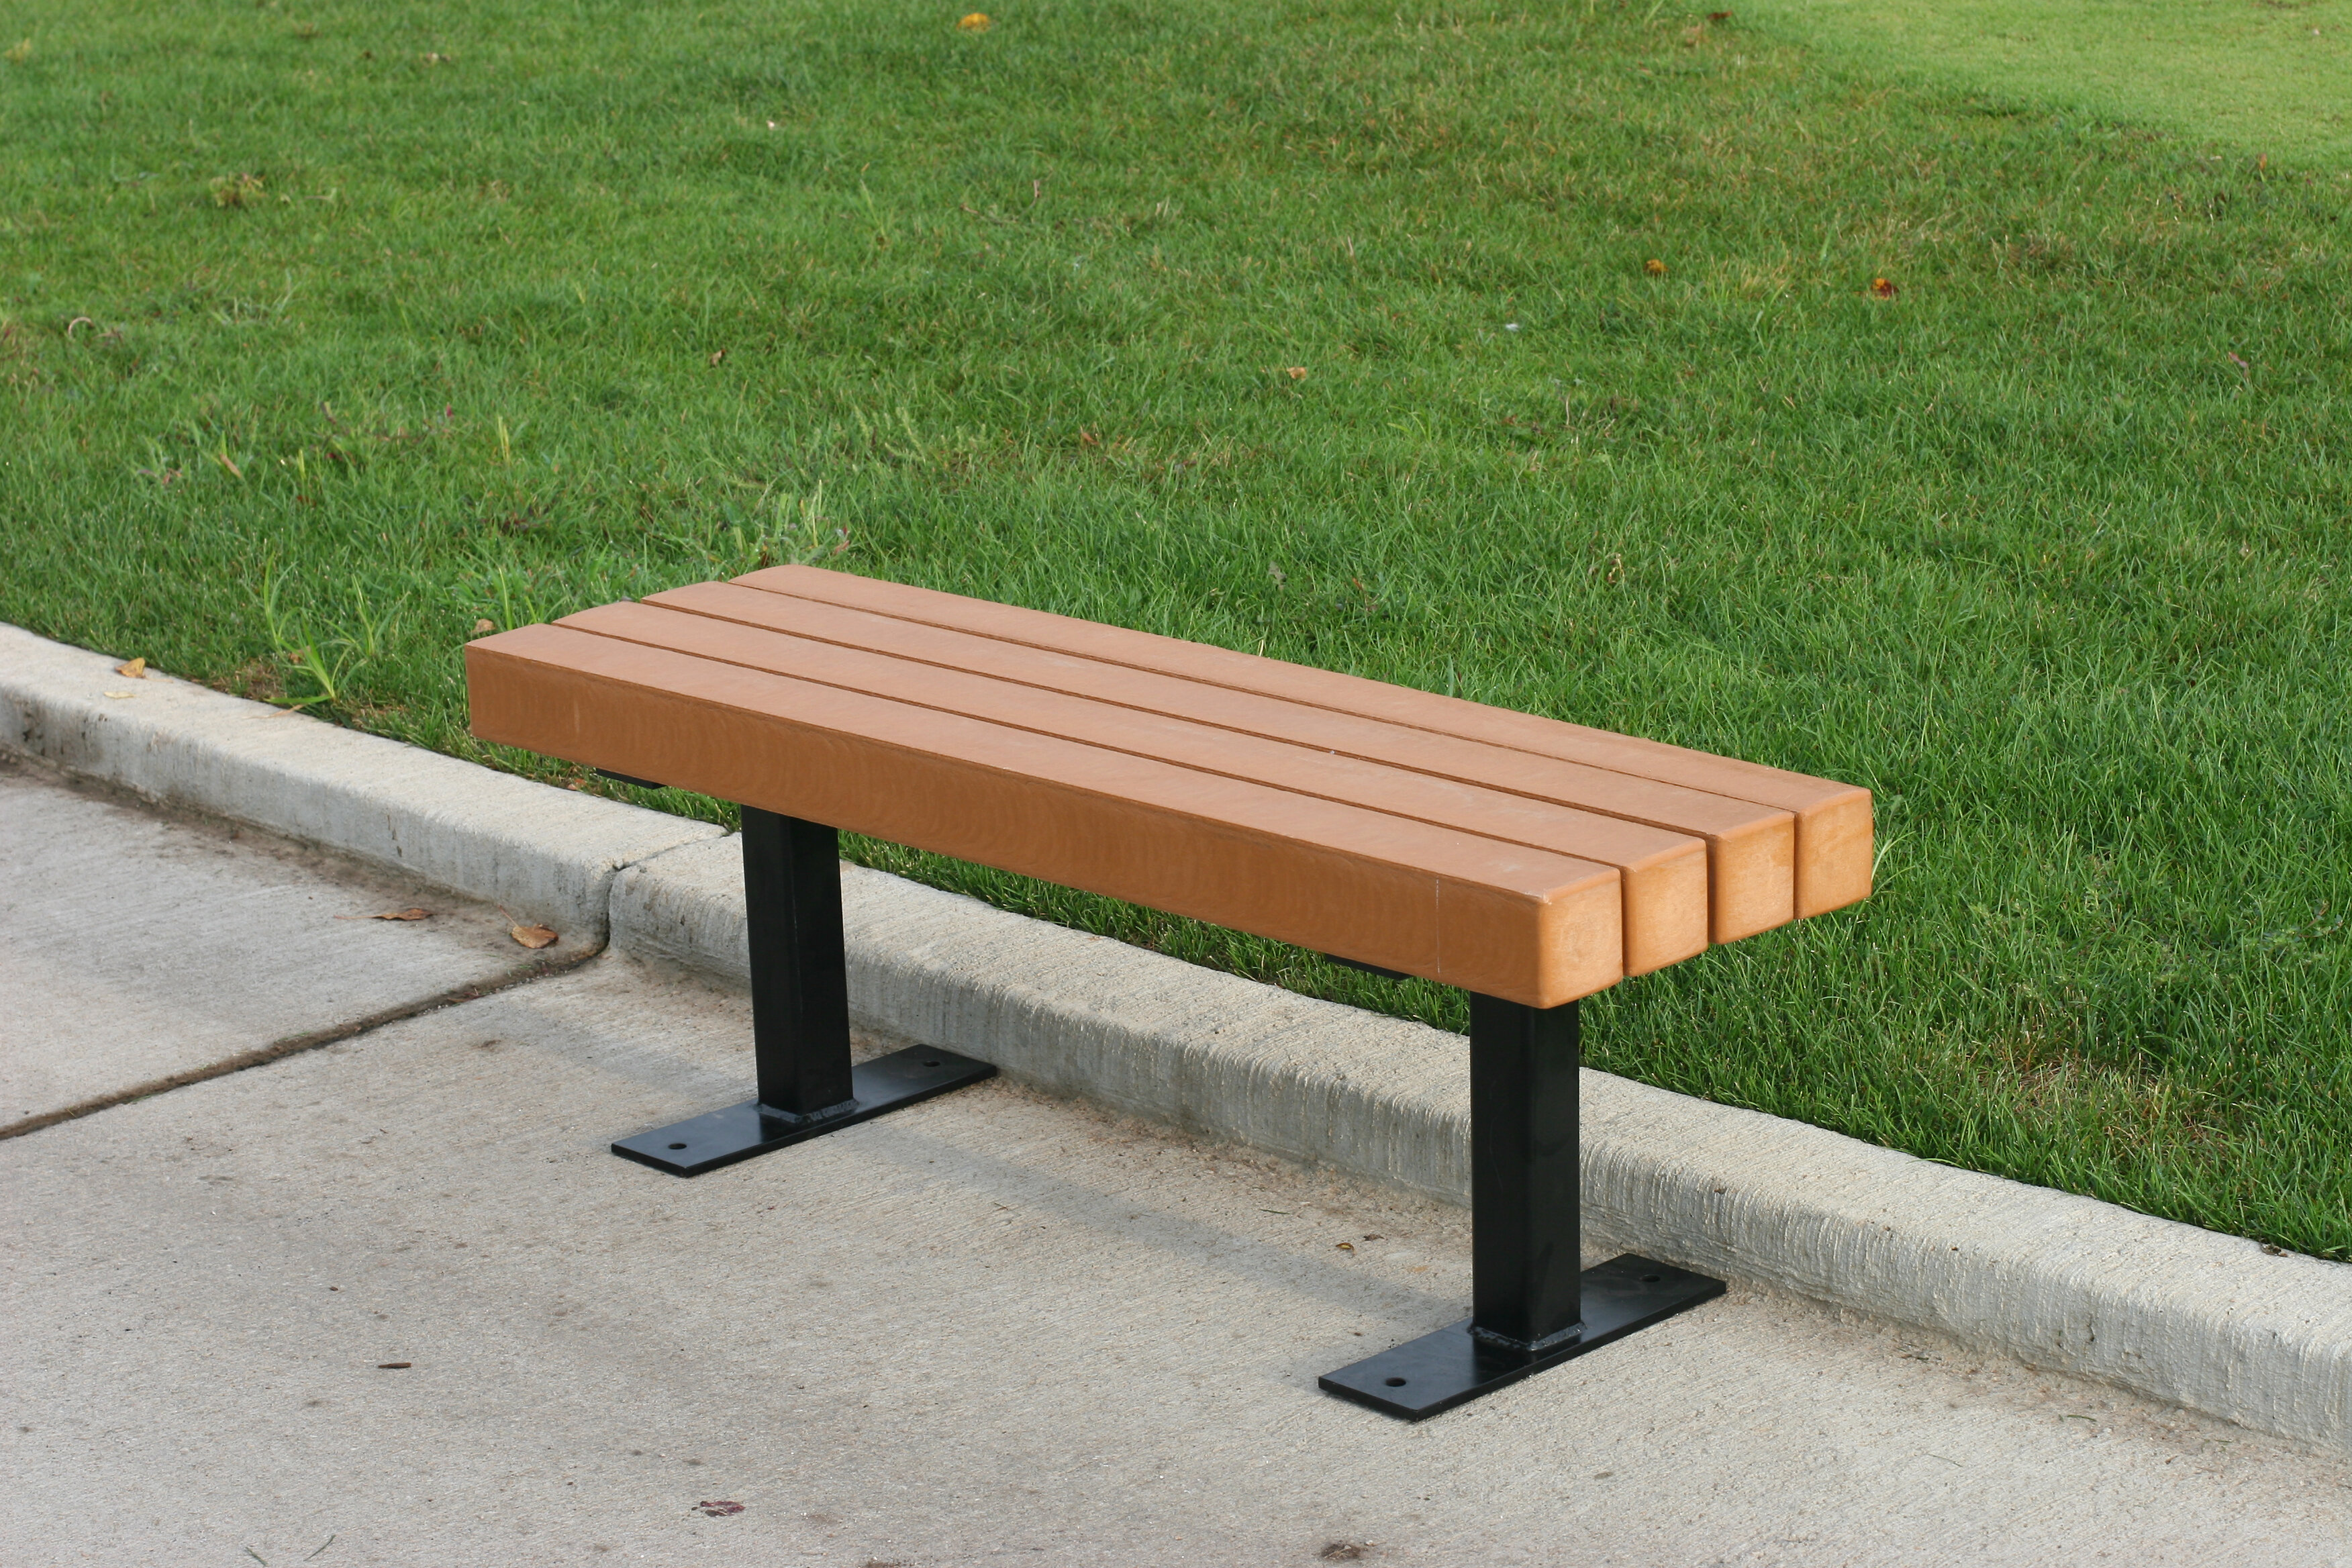 tables heavy and outdoor shade pb picnic benches site shelters plastic furnishings duty bench recycled including